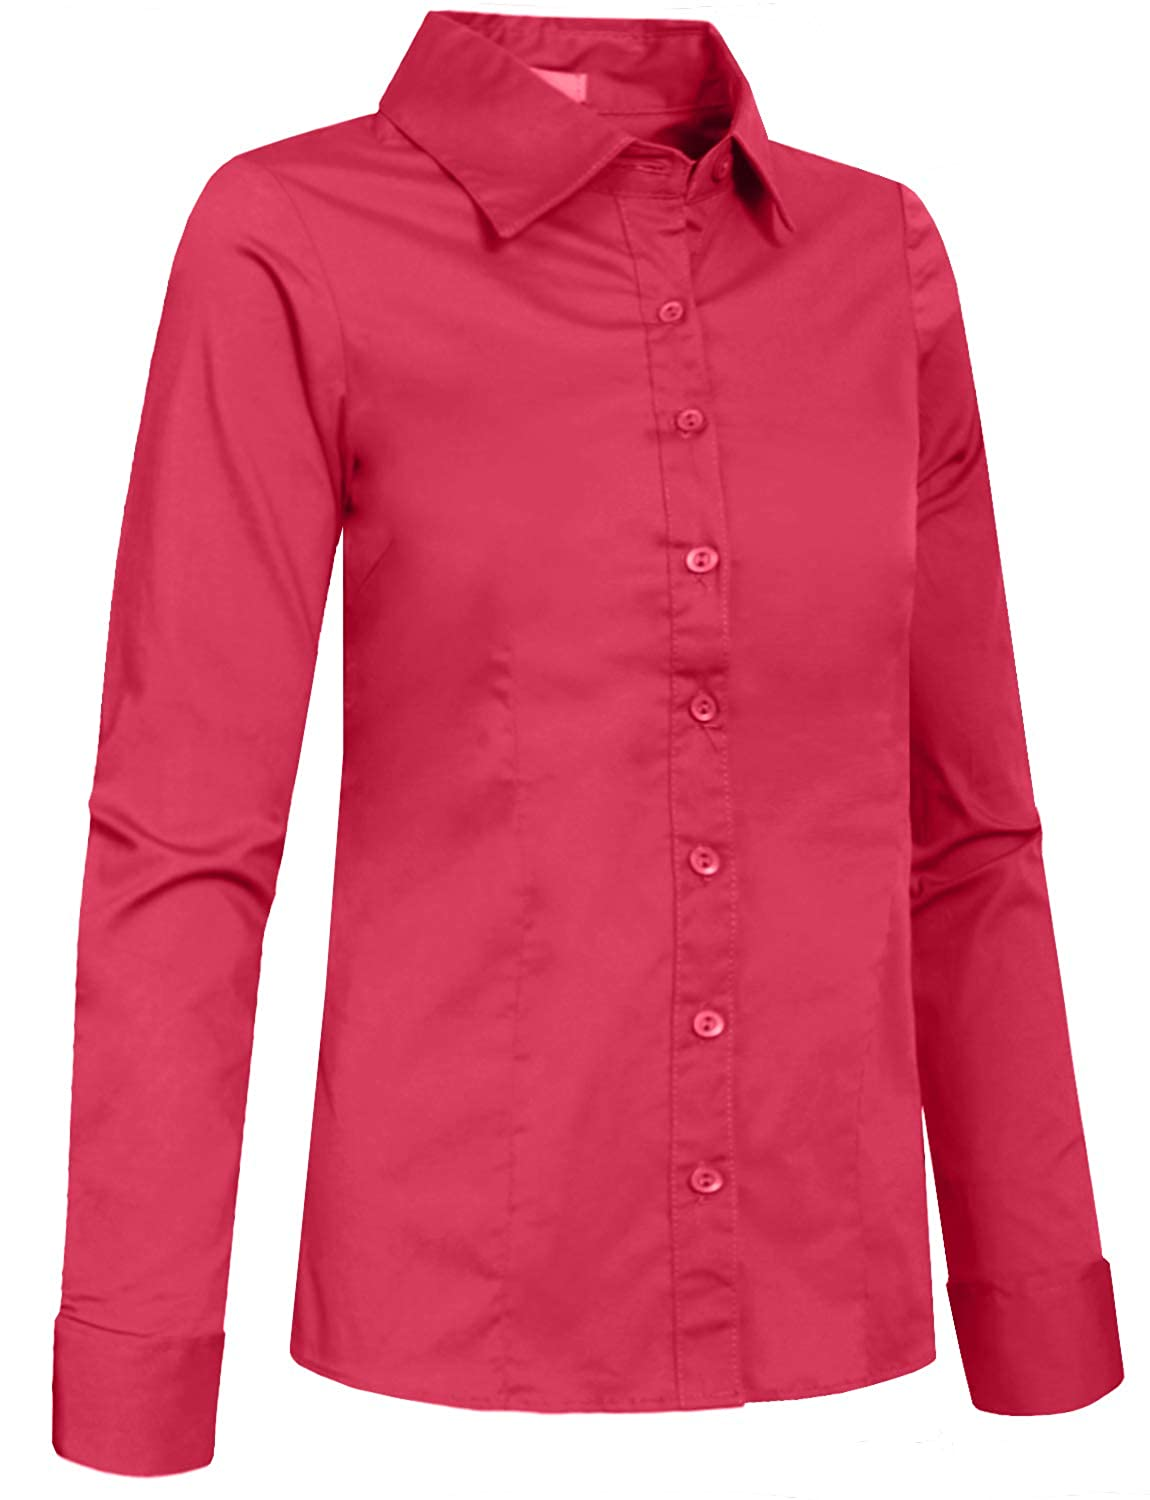 LOVNY Girls Basic Casual Long Sleeve Roll Up Button Down Blouse Shirts J